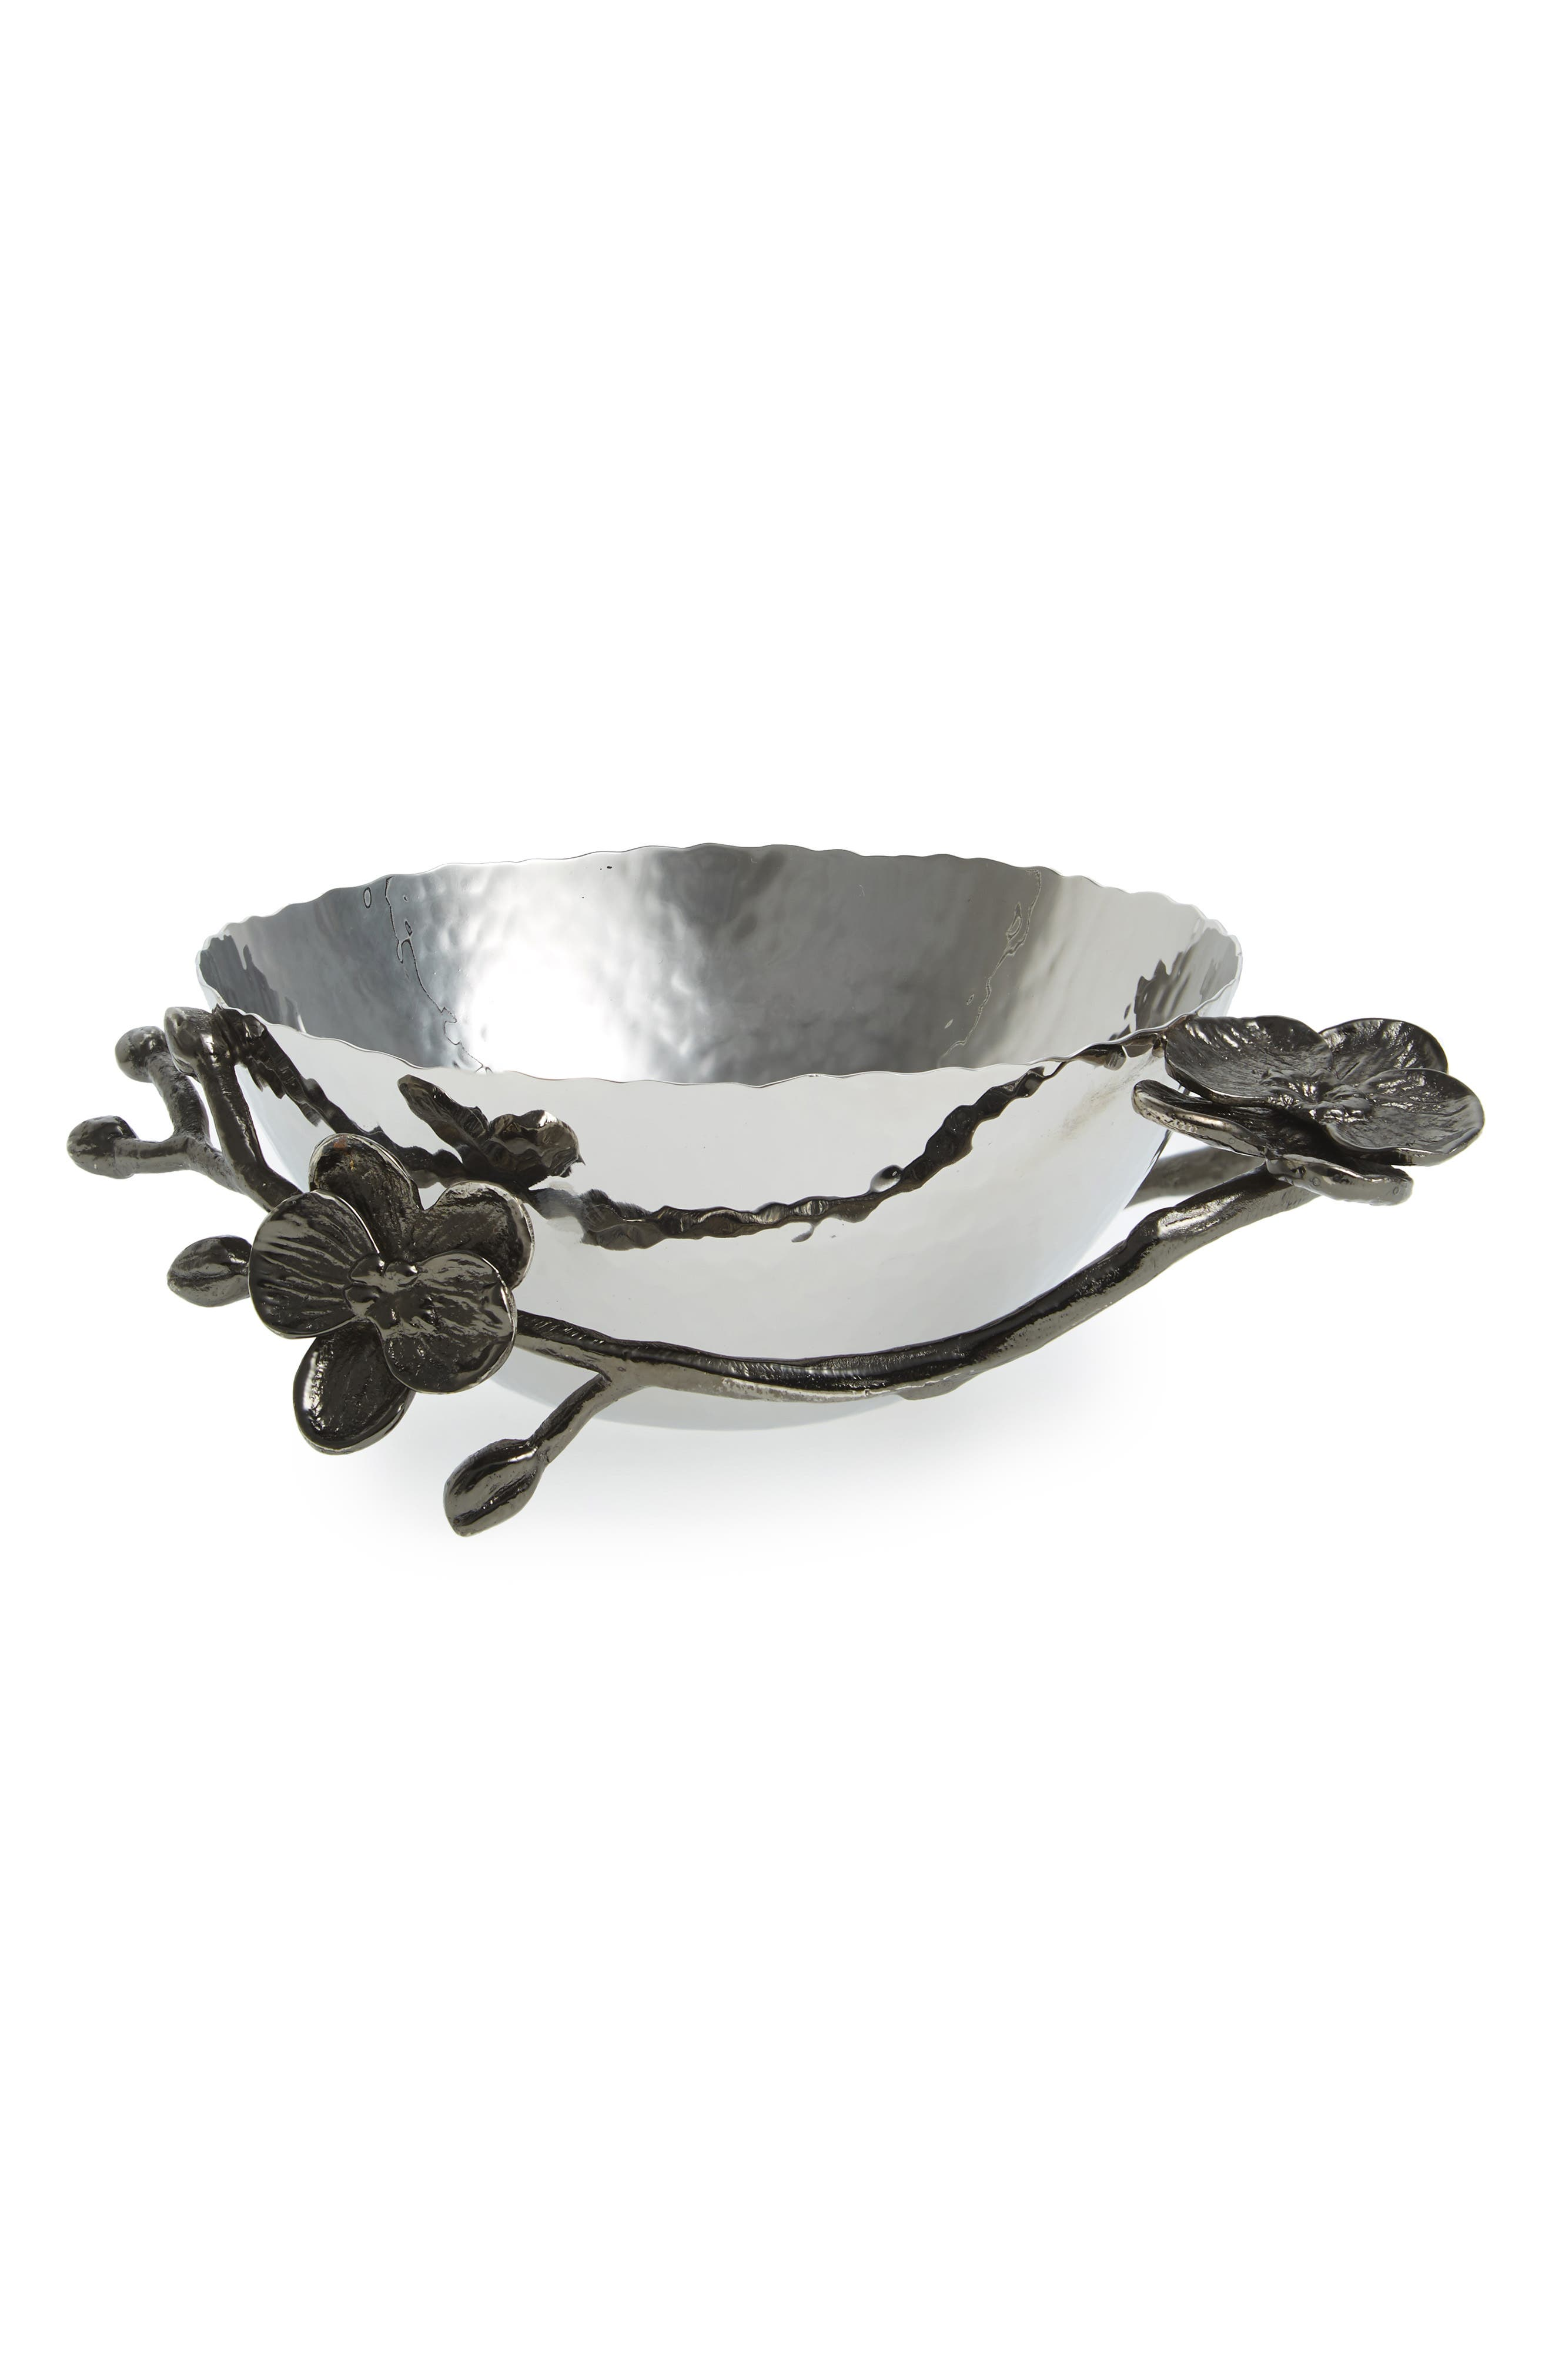 'Black Orchid' Nut Bowl,                             Main thumbnail 1, color,                             Black Nickel